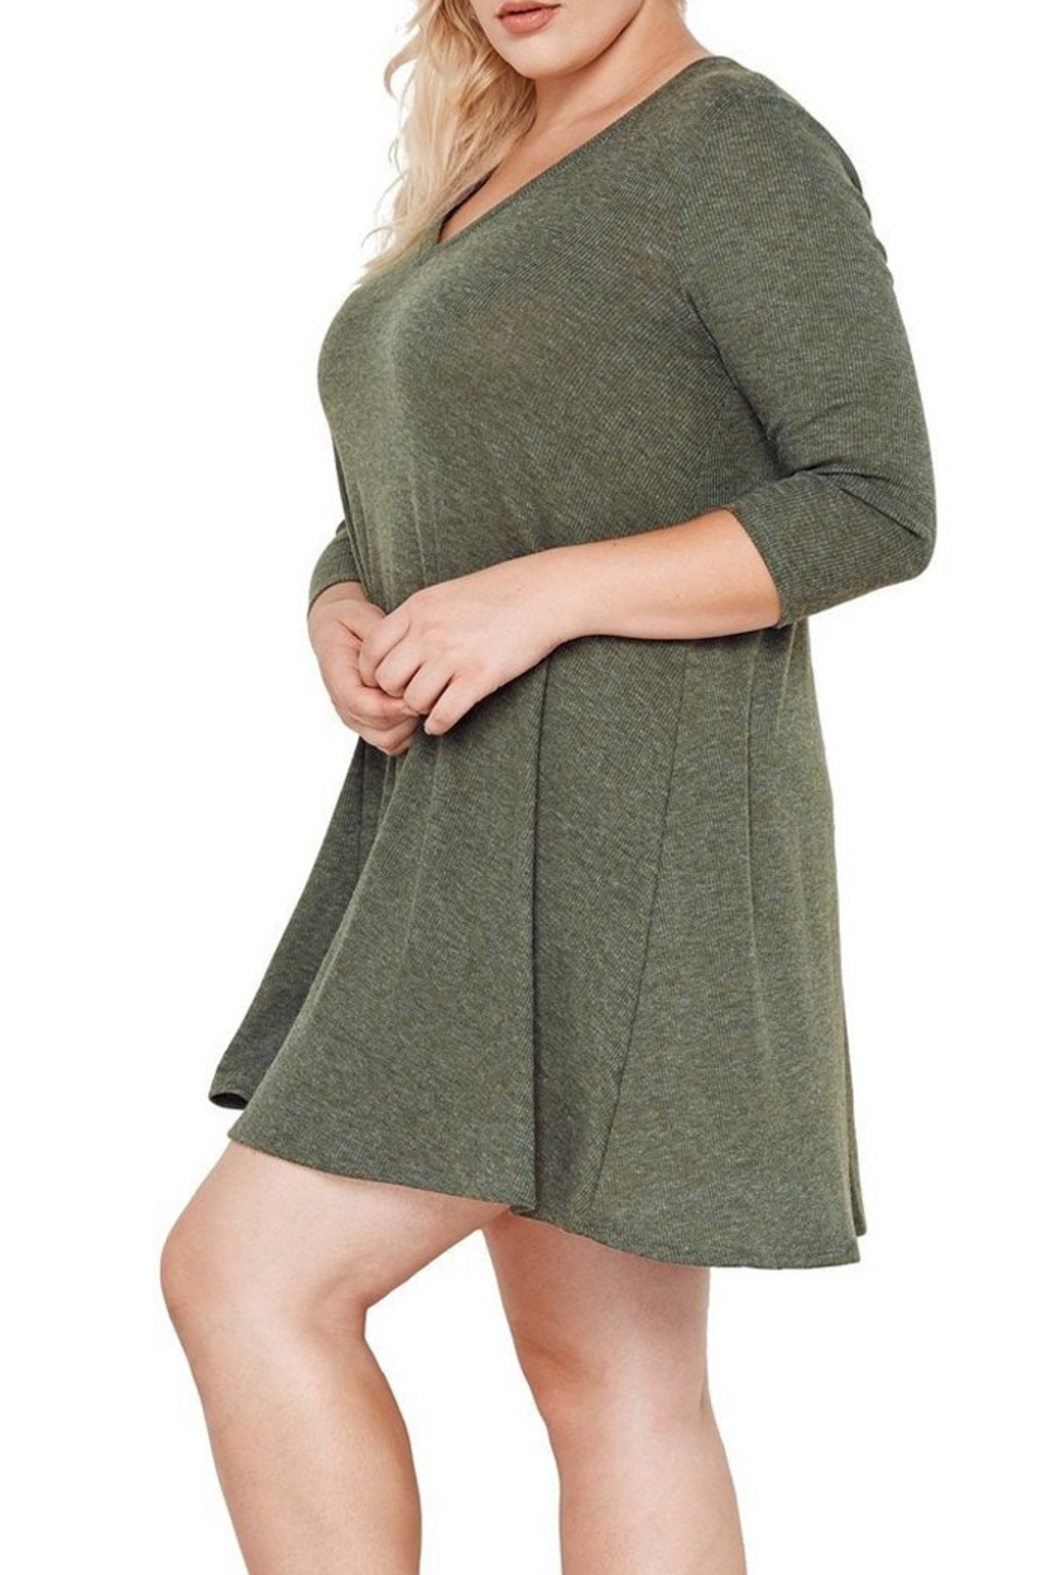 MaiTai Olive Ribbed Dress - Front Cropped Image